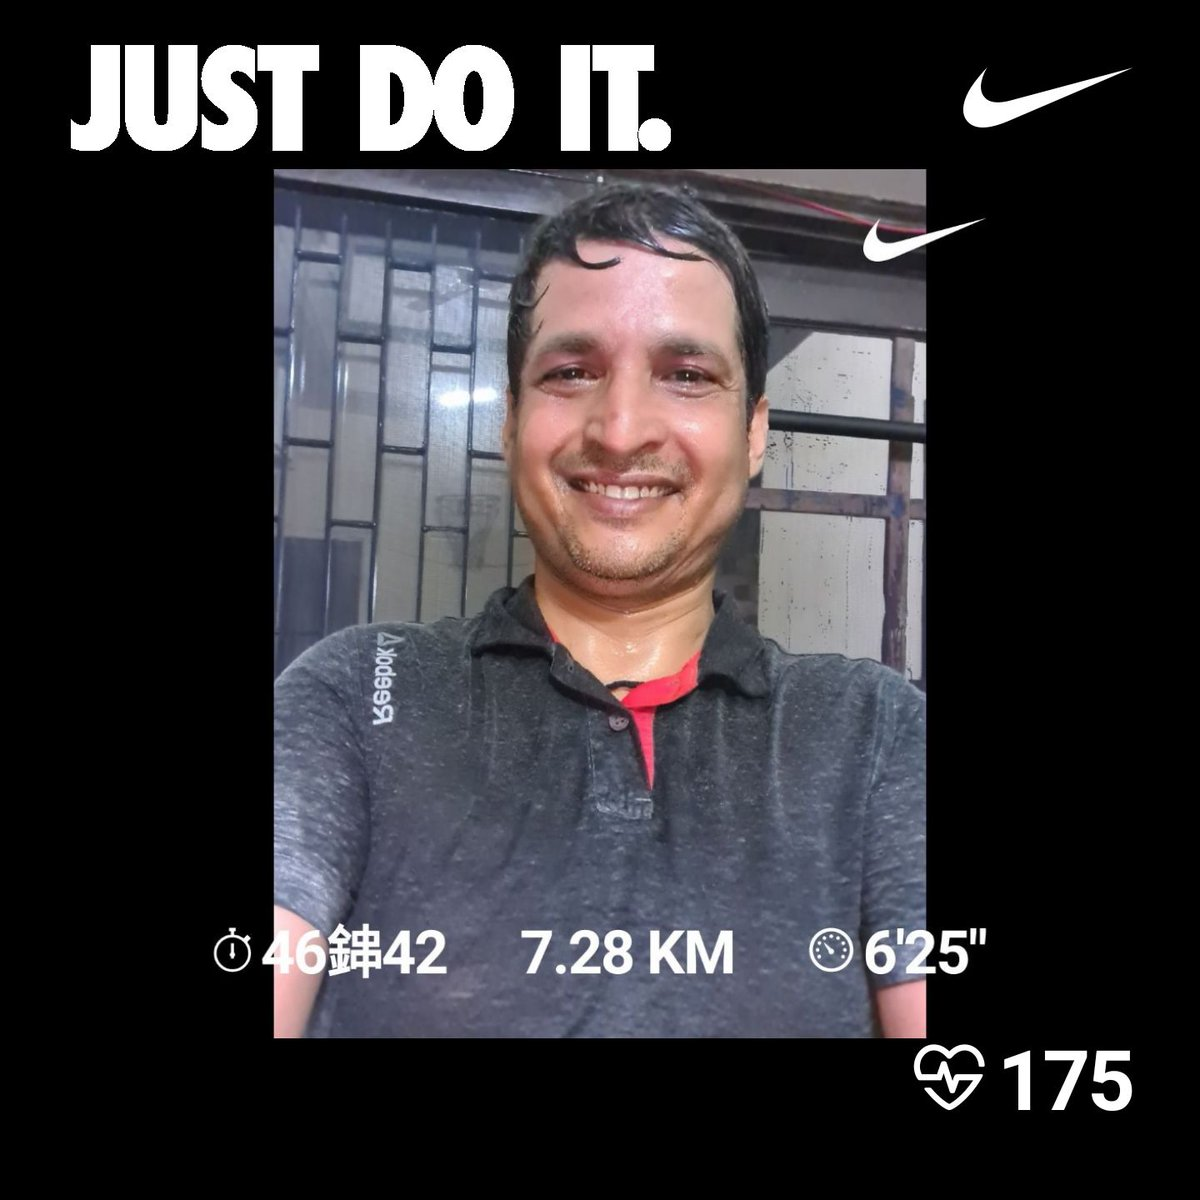 Tuesday Evening Run..  #NewIndiaFitIndia #FitIndiaMovement #EveryRunHasAPurpose